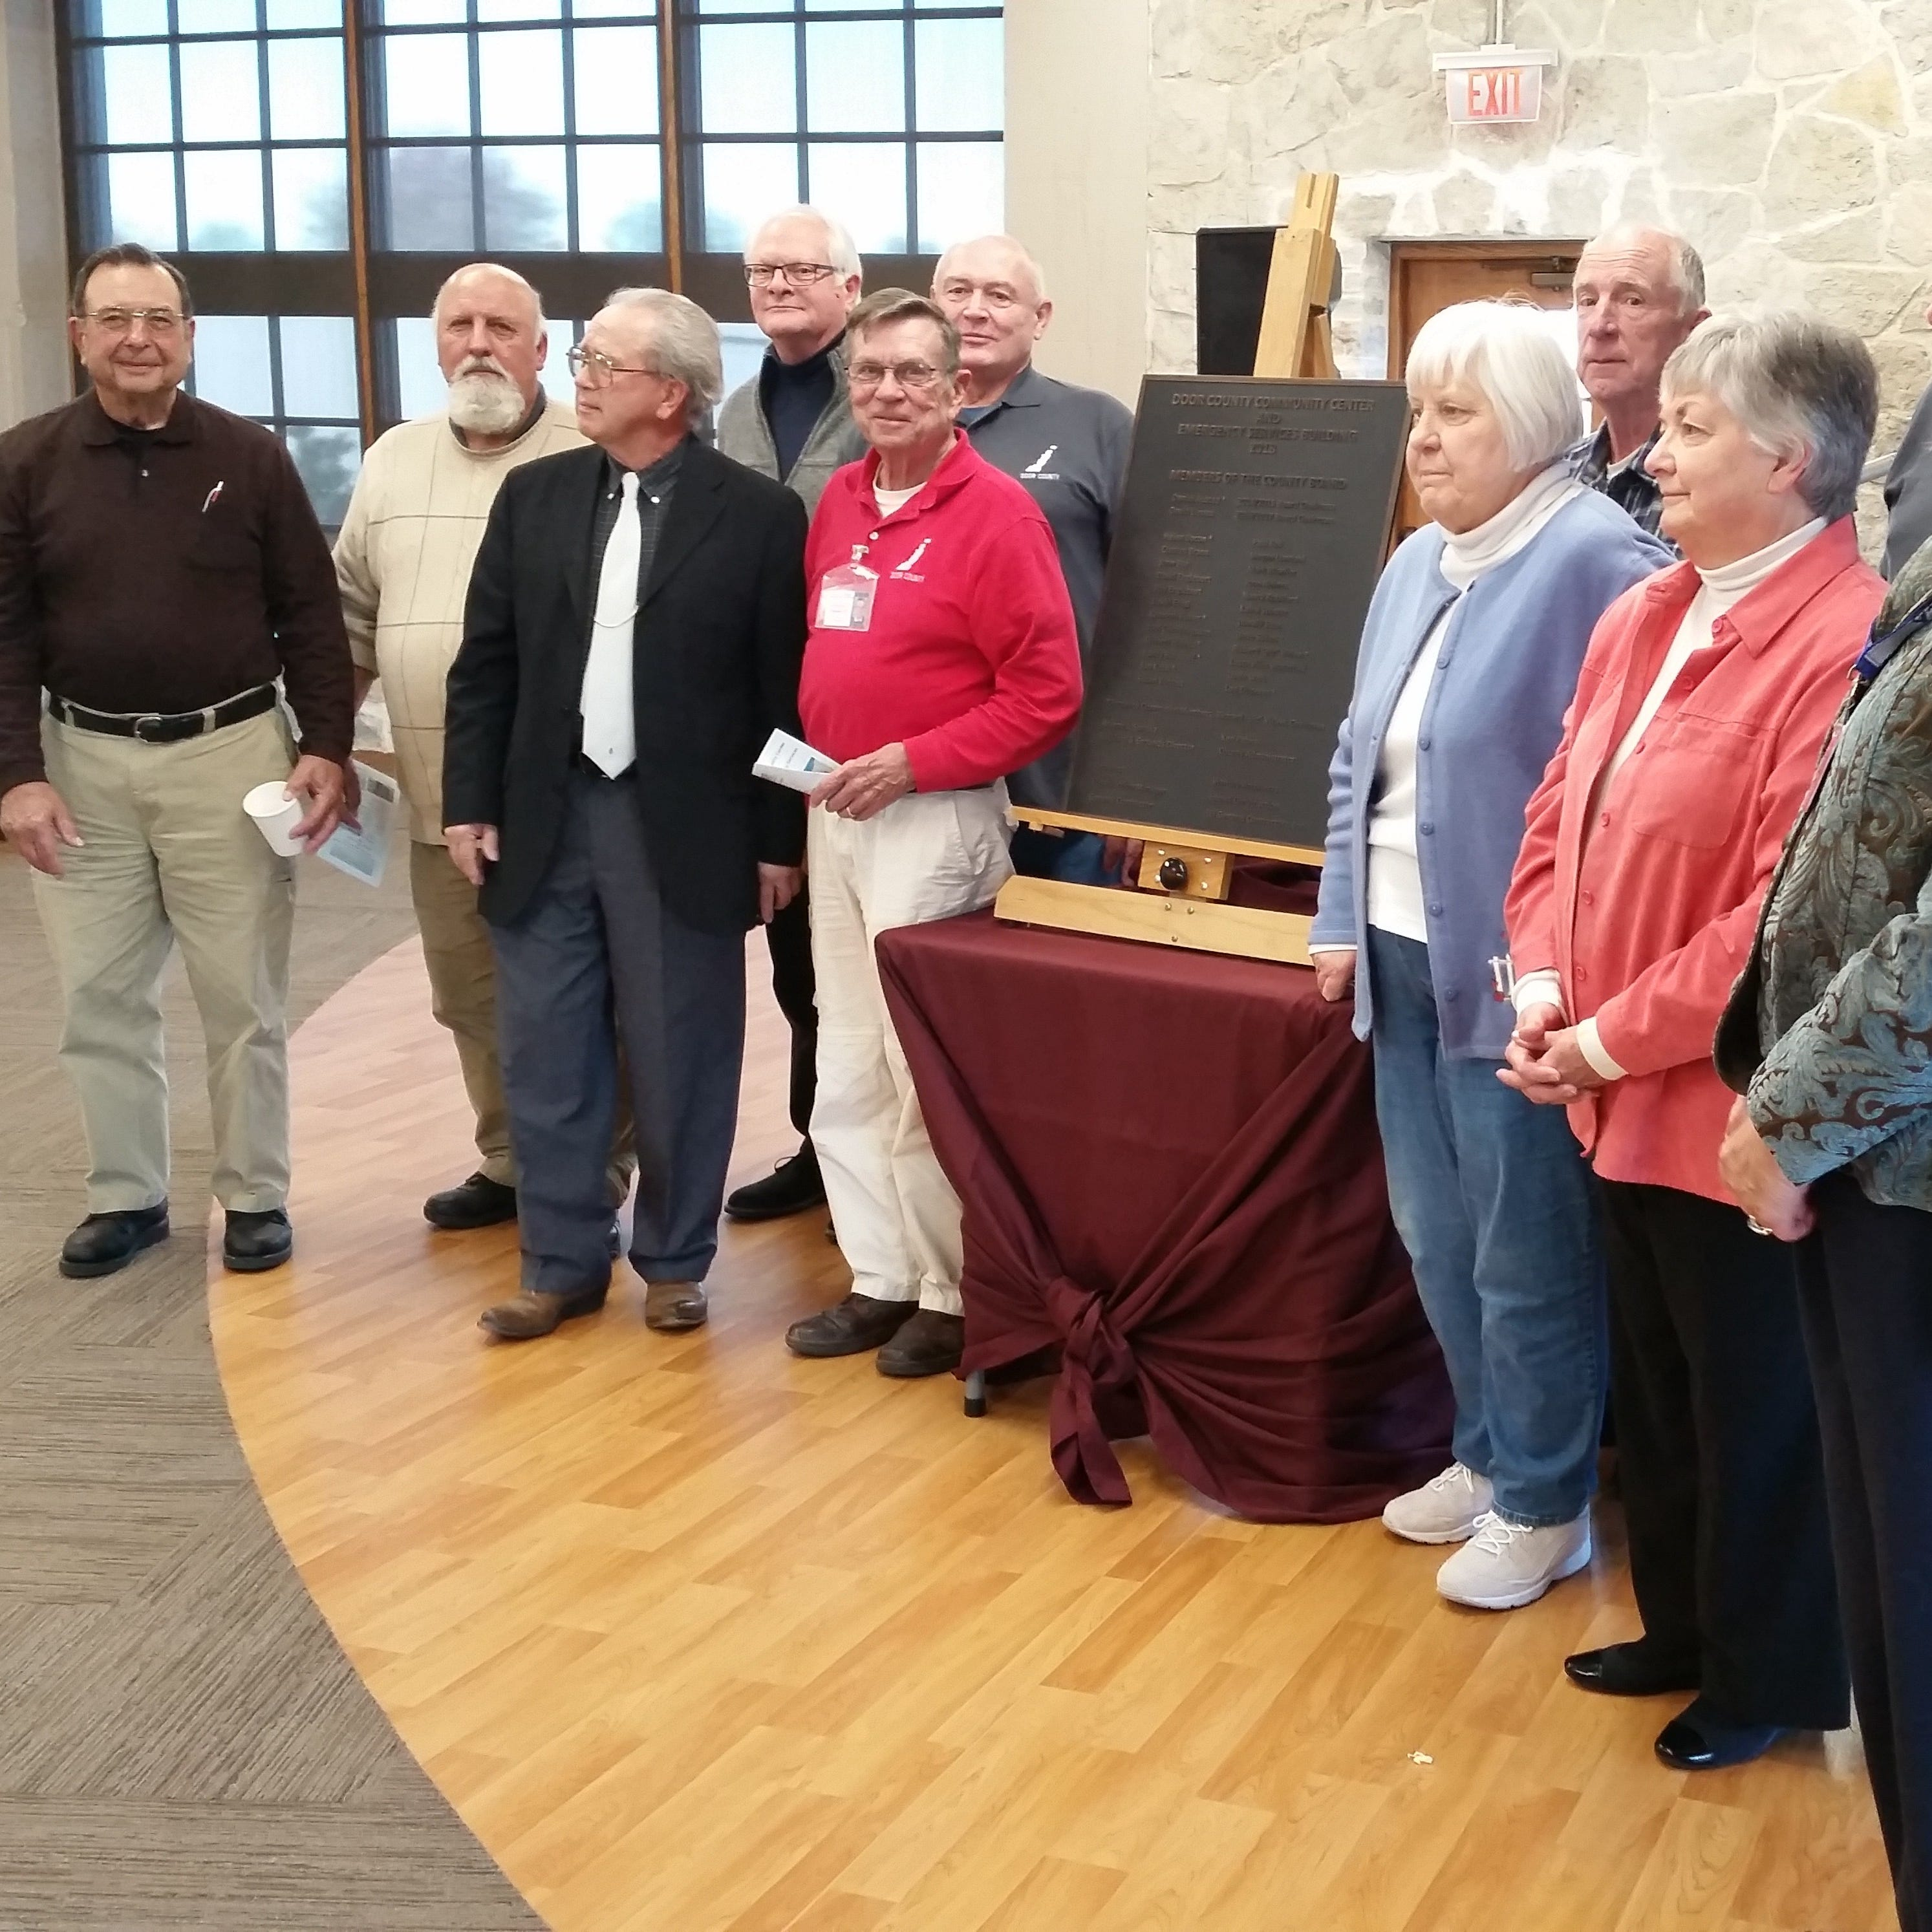 Sturgeon Bay highway shop remodeled into community center, emergency department